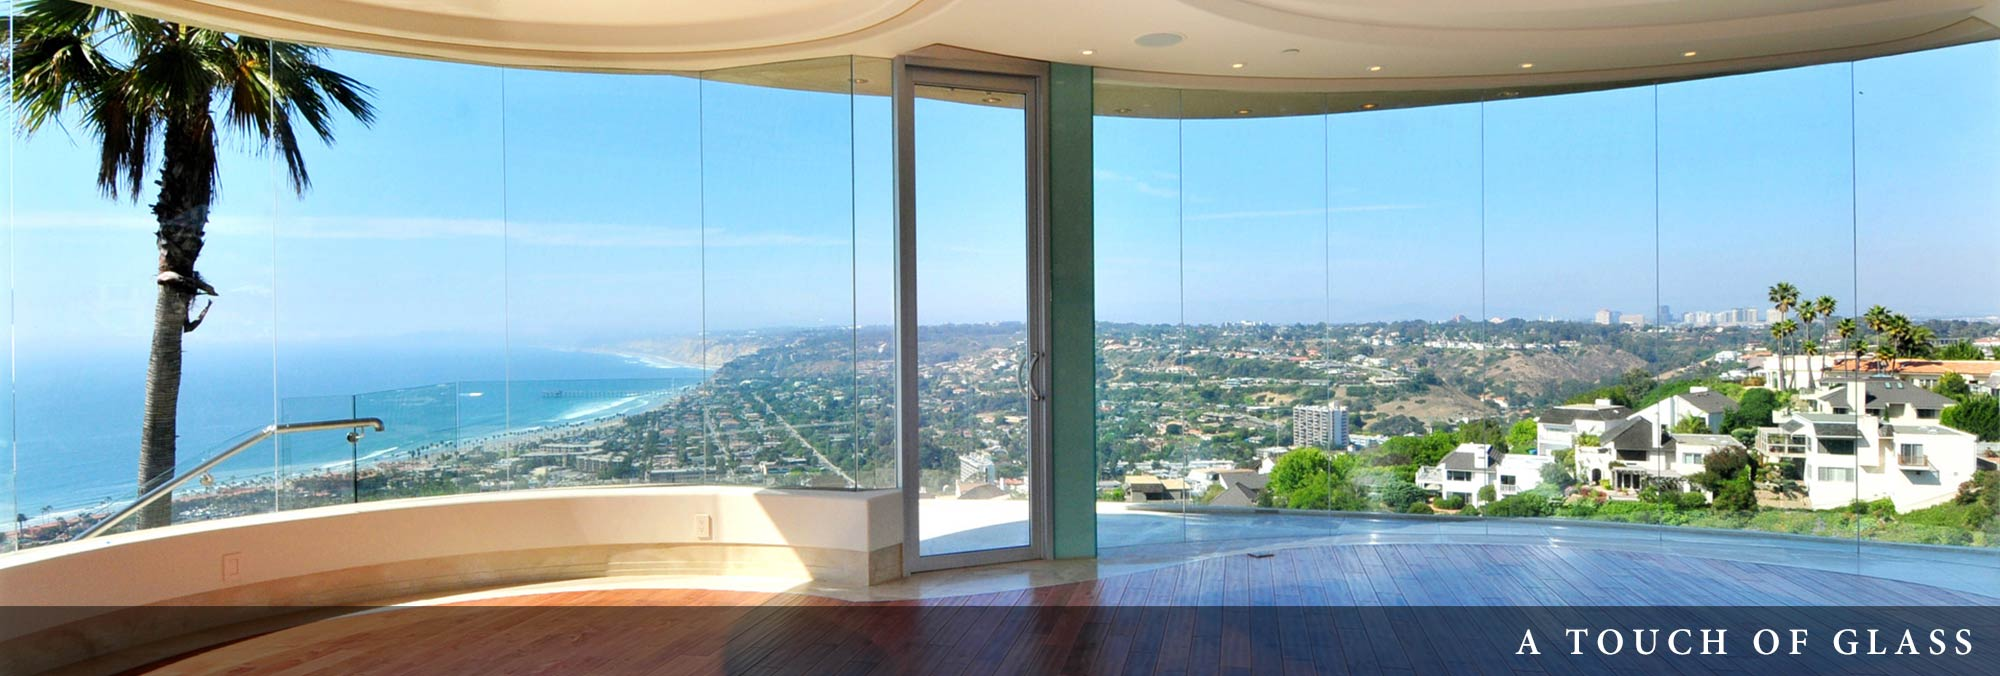 Commercial Glass Doors In San Diego Ca Free Estimates